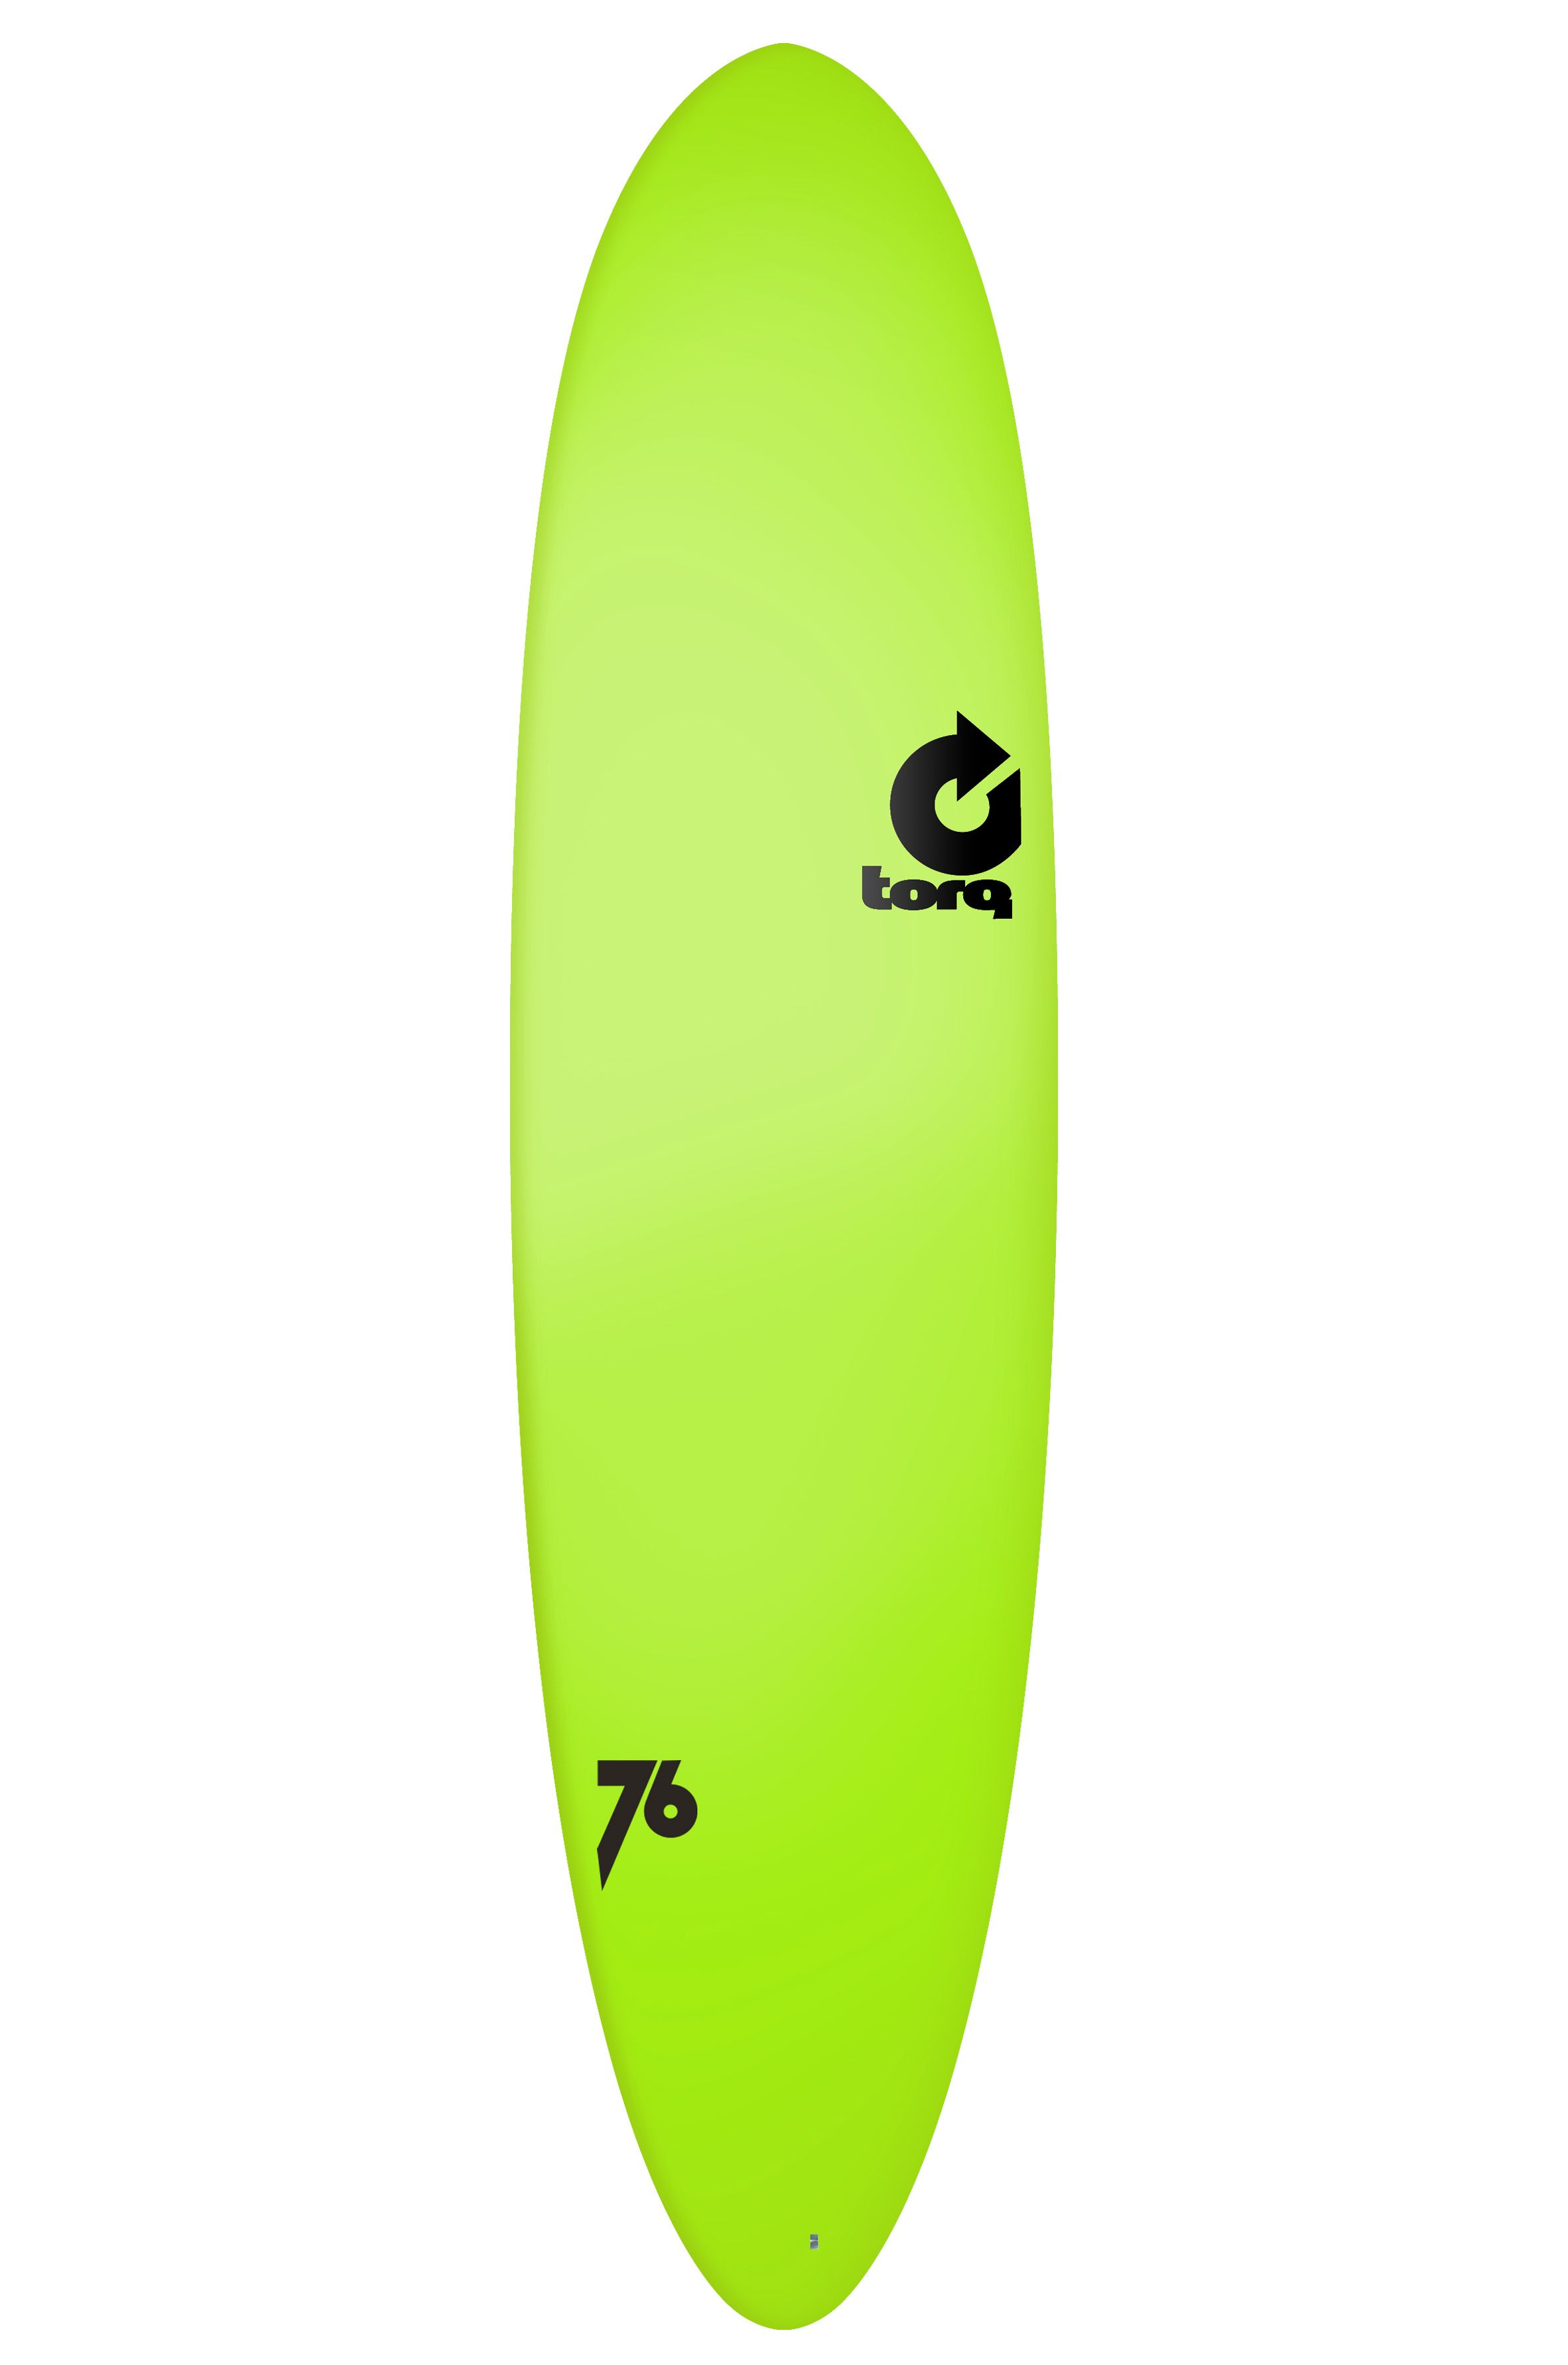 Torq Surf Board 7'6 MOD FUN GREEN SOFT DECK Round Pin Tail - Color Futures 7ft6